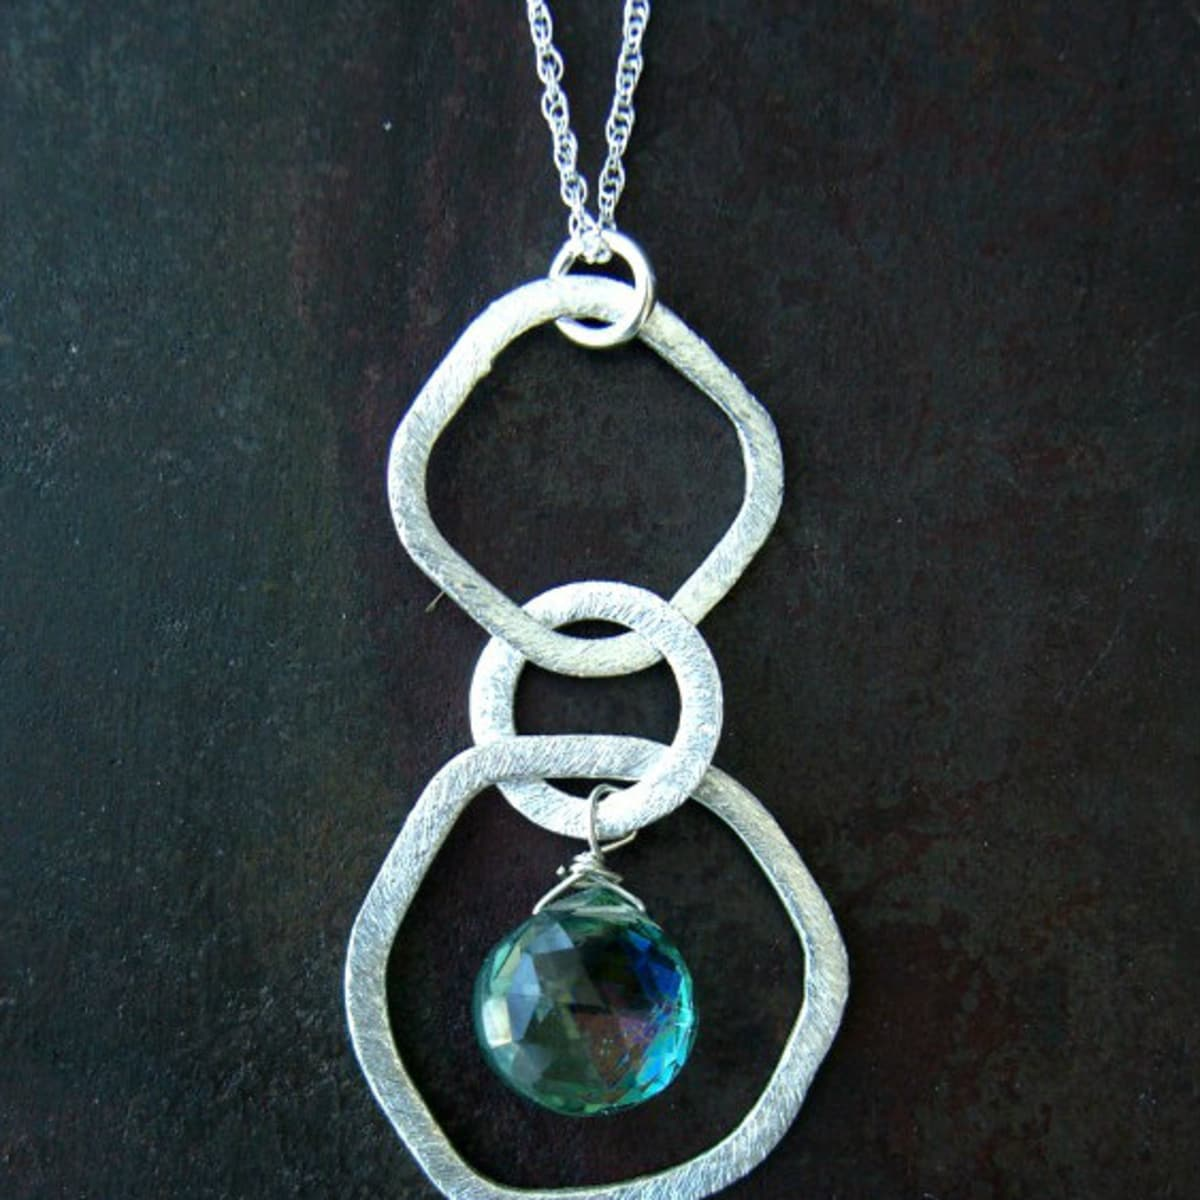 Treisi Jewelry necklace